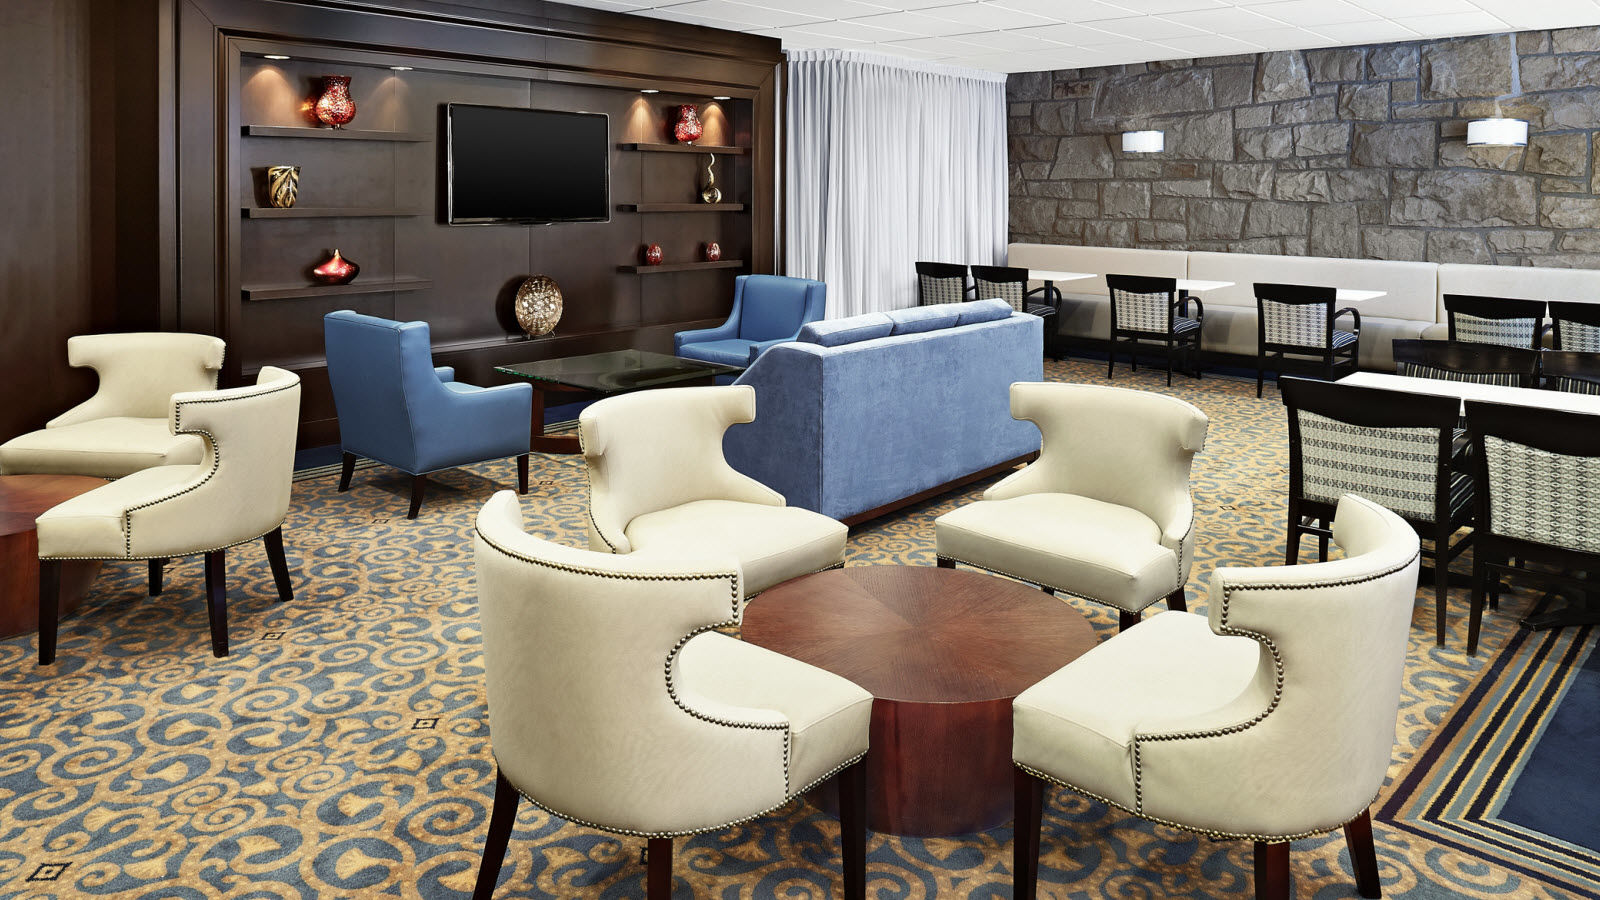 Hotel Features - Montreal Airport Club Lounge